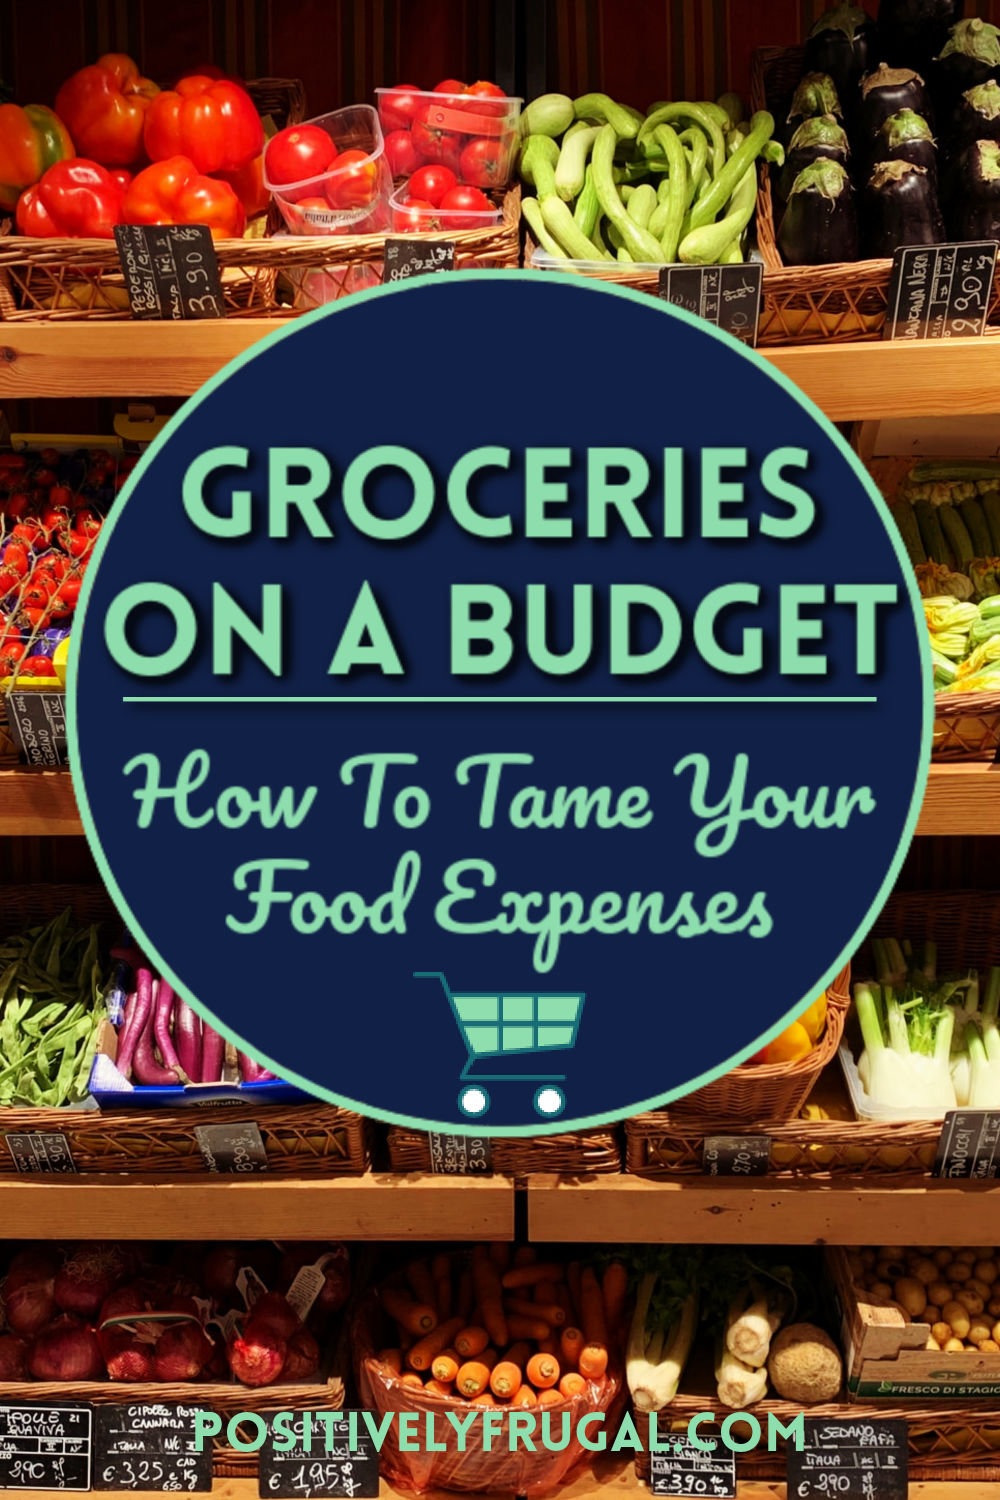 Groceries on a Budget by PositivelyFrugal.com